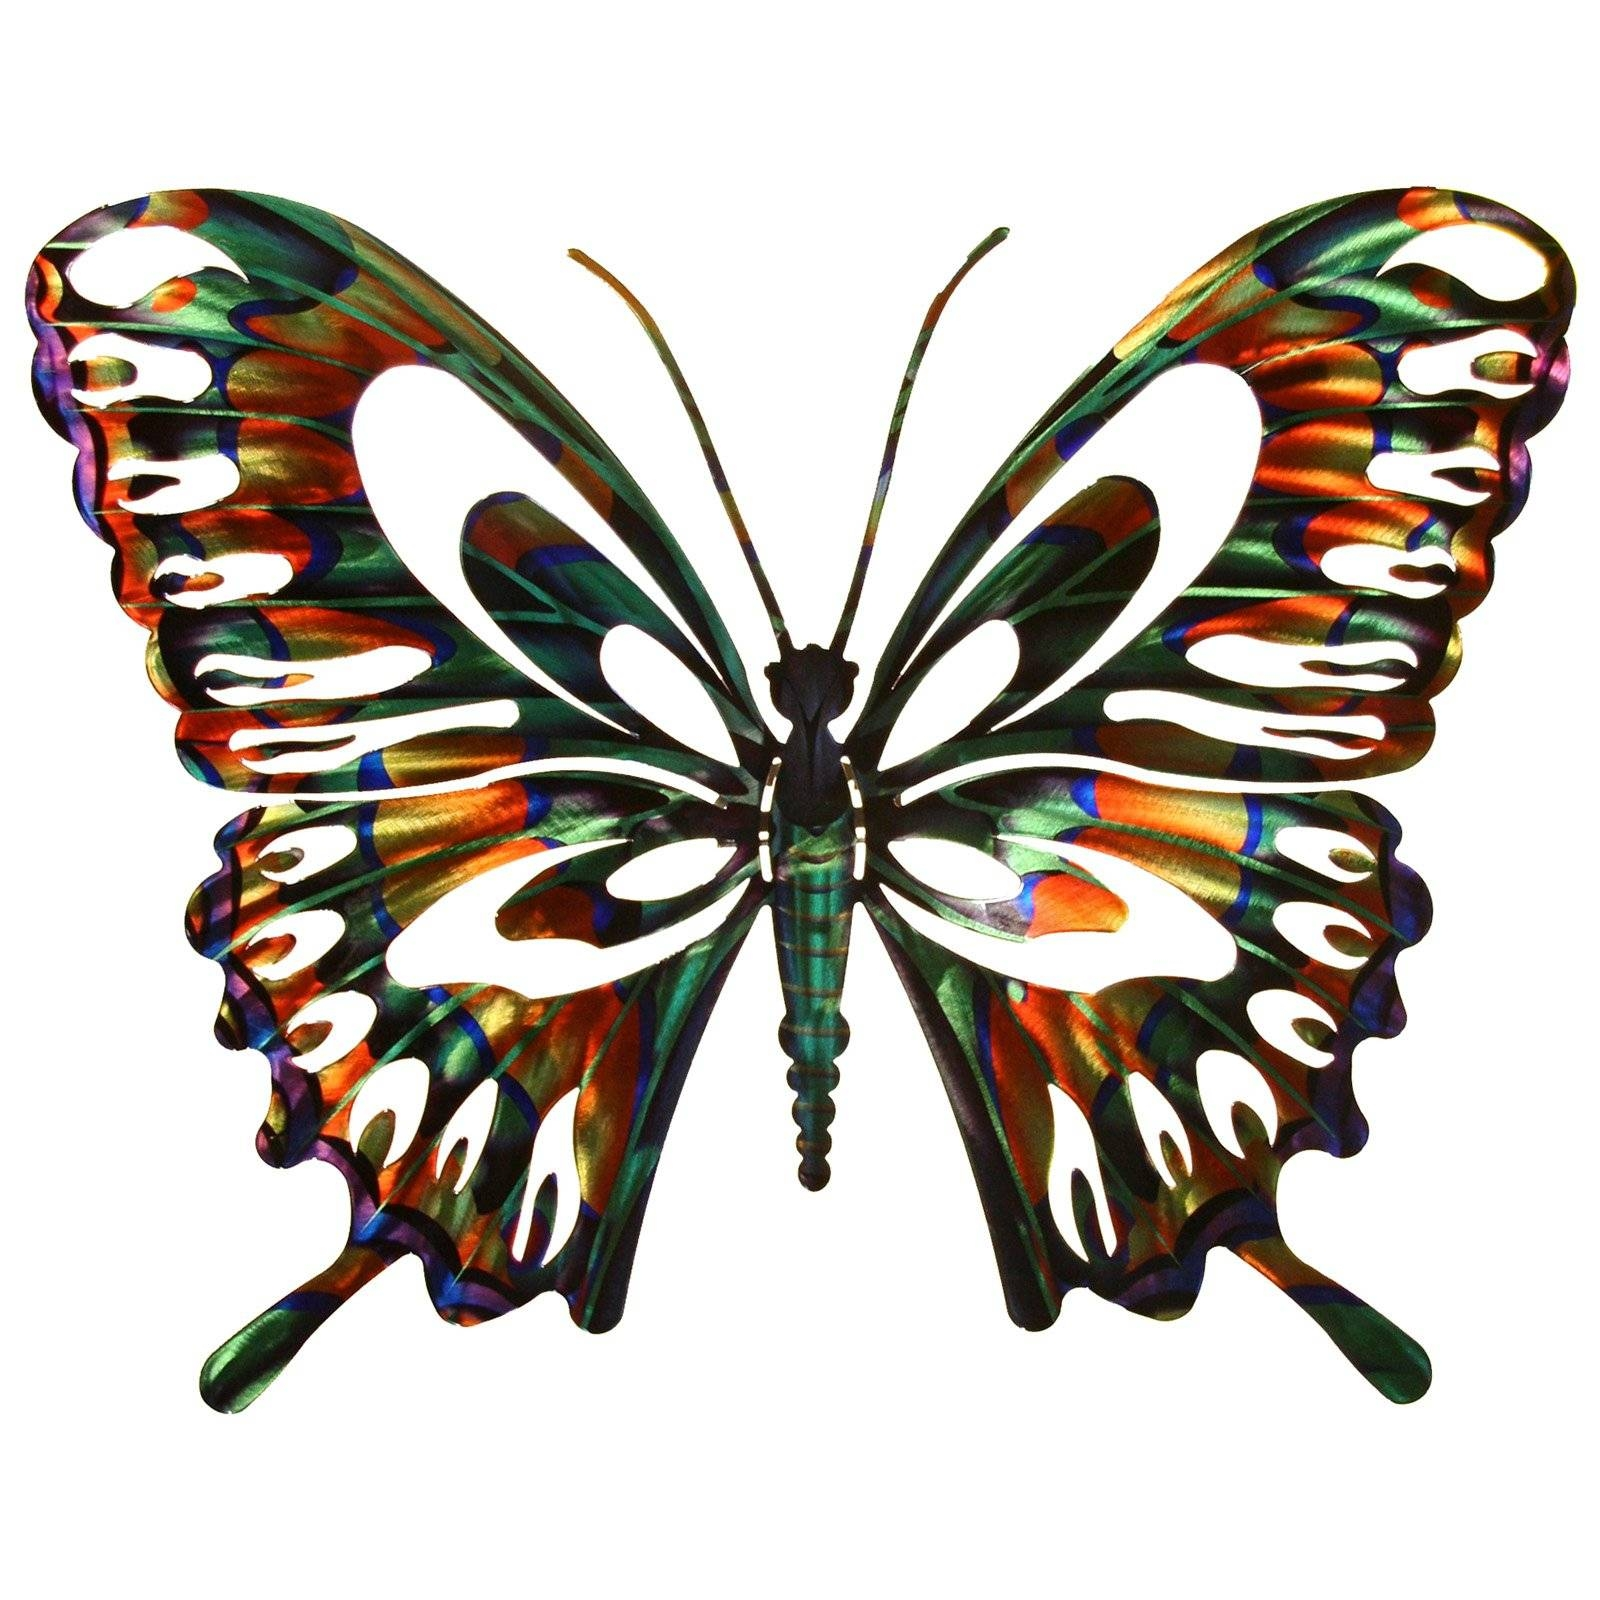 3D Butterfly Metal Outdoor Wall Art | Hayneedle Within Most Up To Date Butterfly Metal Wall Art (Gallery 3 of 20)